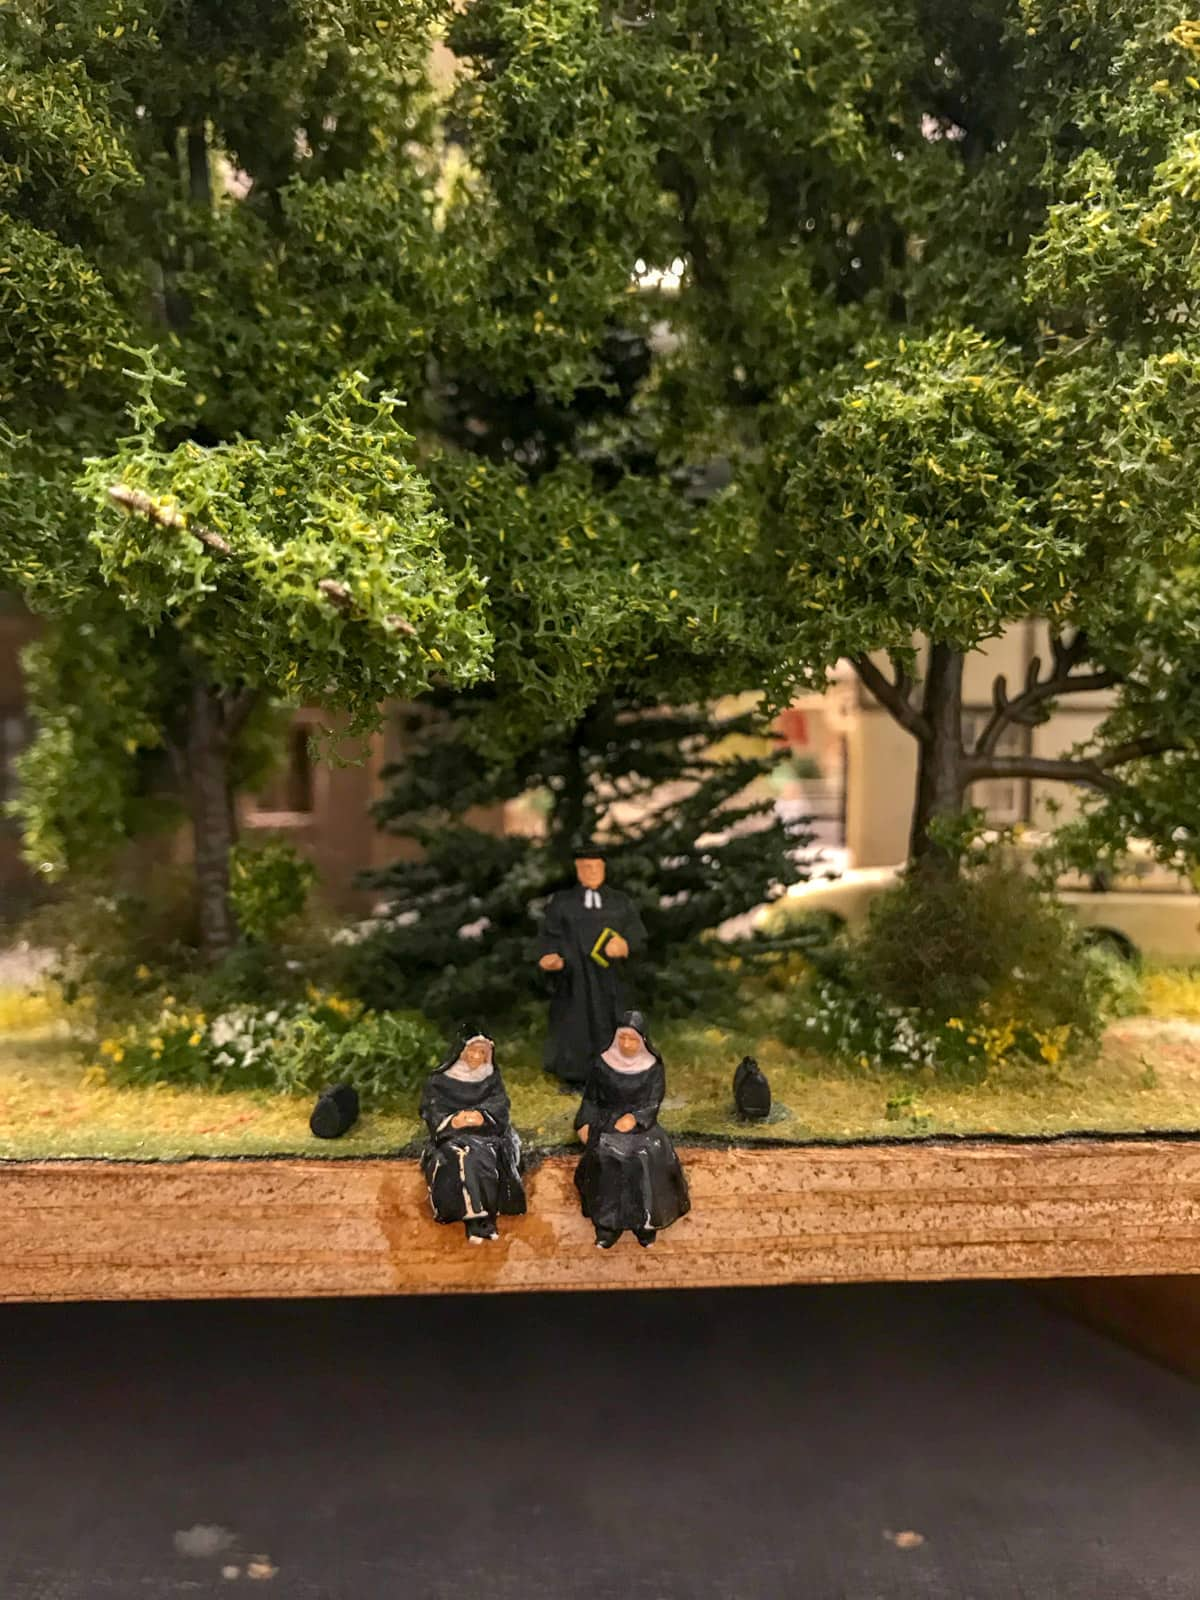 Two figurines of nuns sitting at the edge of a landscape. Behind them is a figurine man dressed in black. There are trees behind them as well